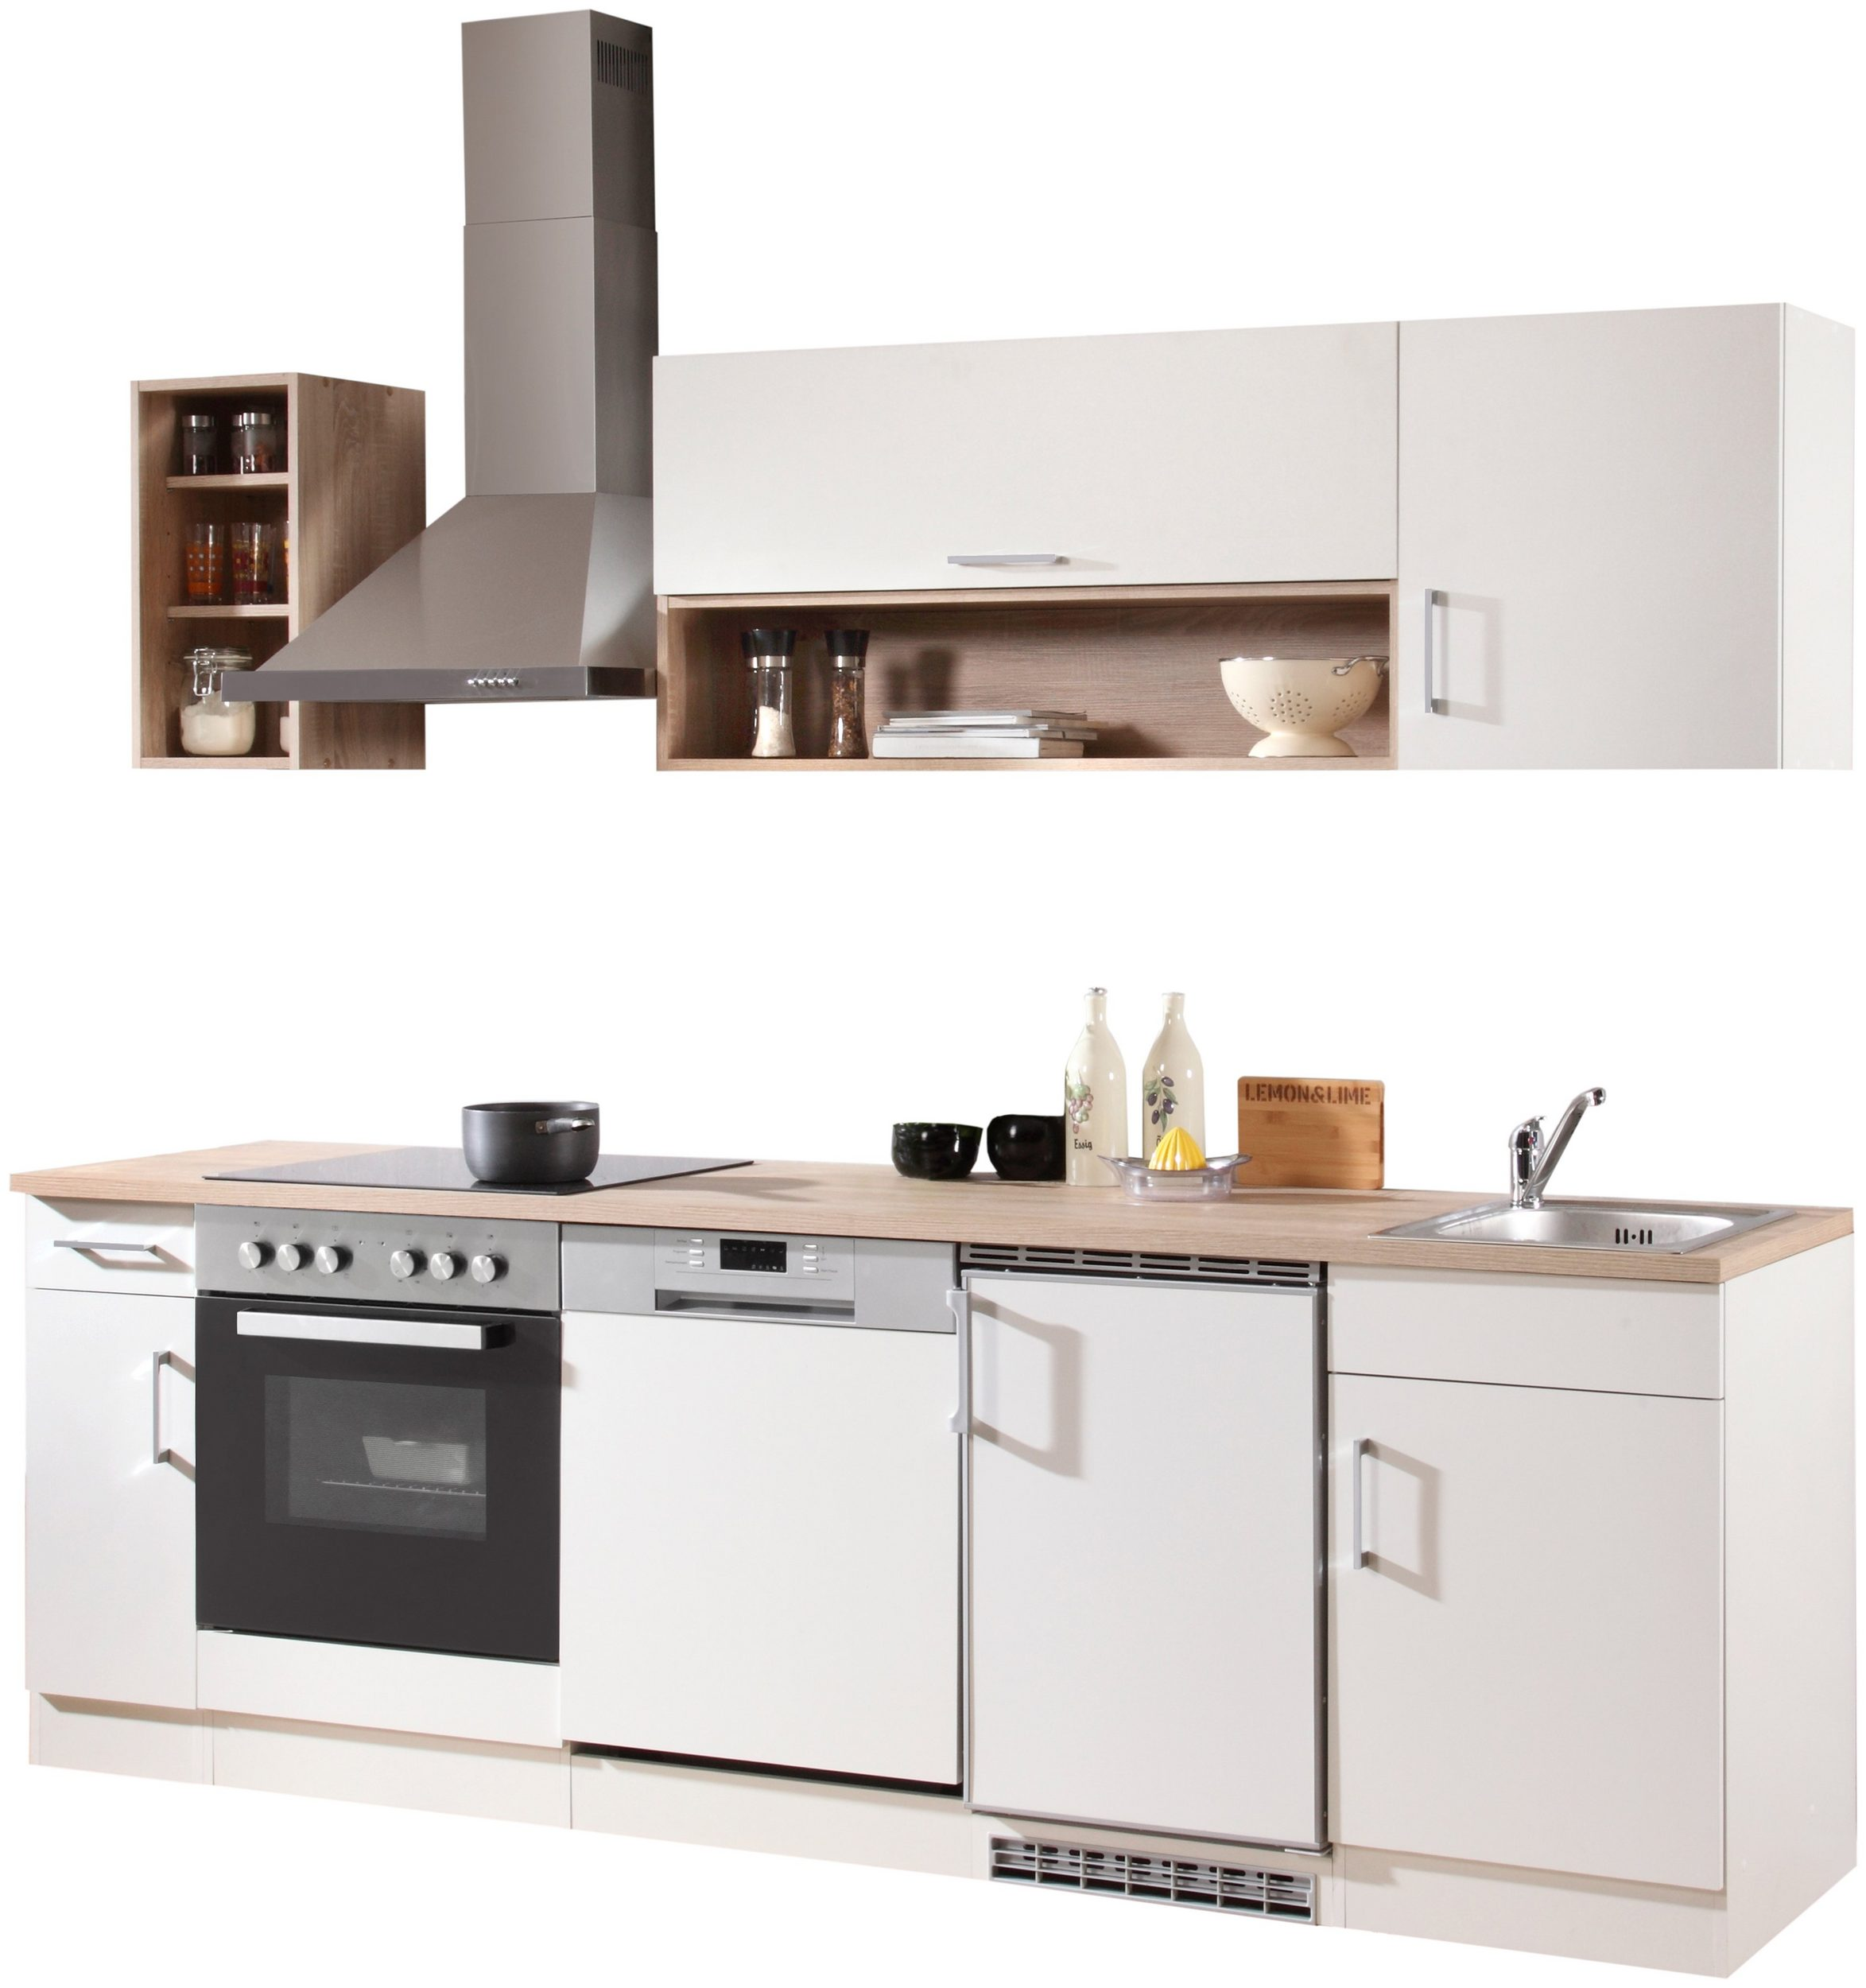 836582A Vimle Kitchen Cabinets HELD khmer in phnom penh cambodia